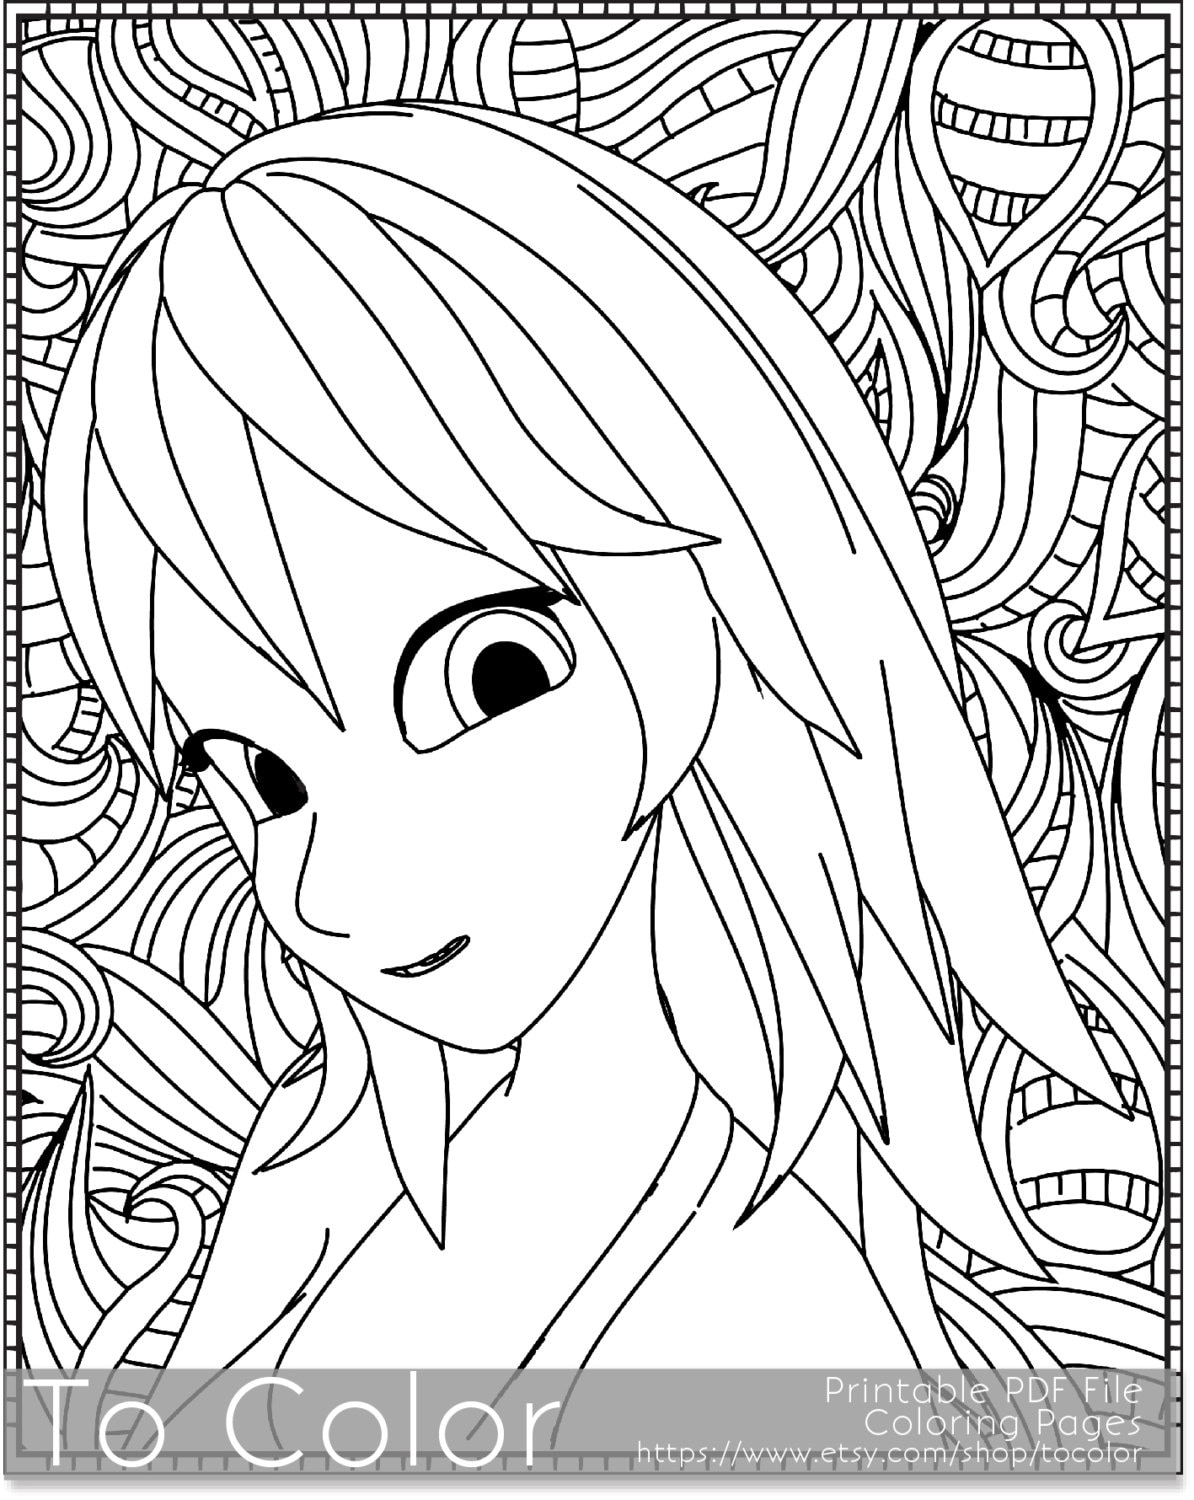 coloring pages retro - photo#18